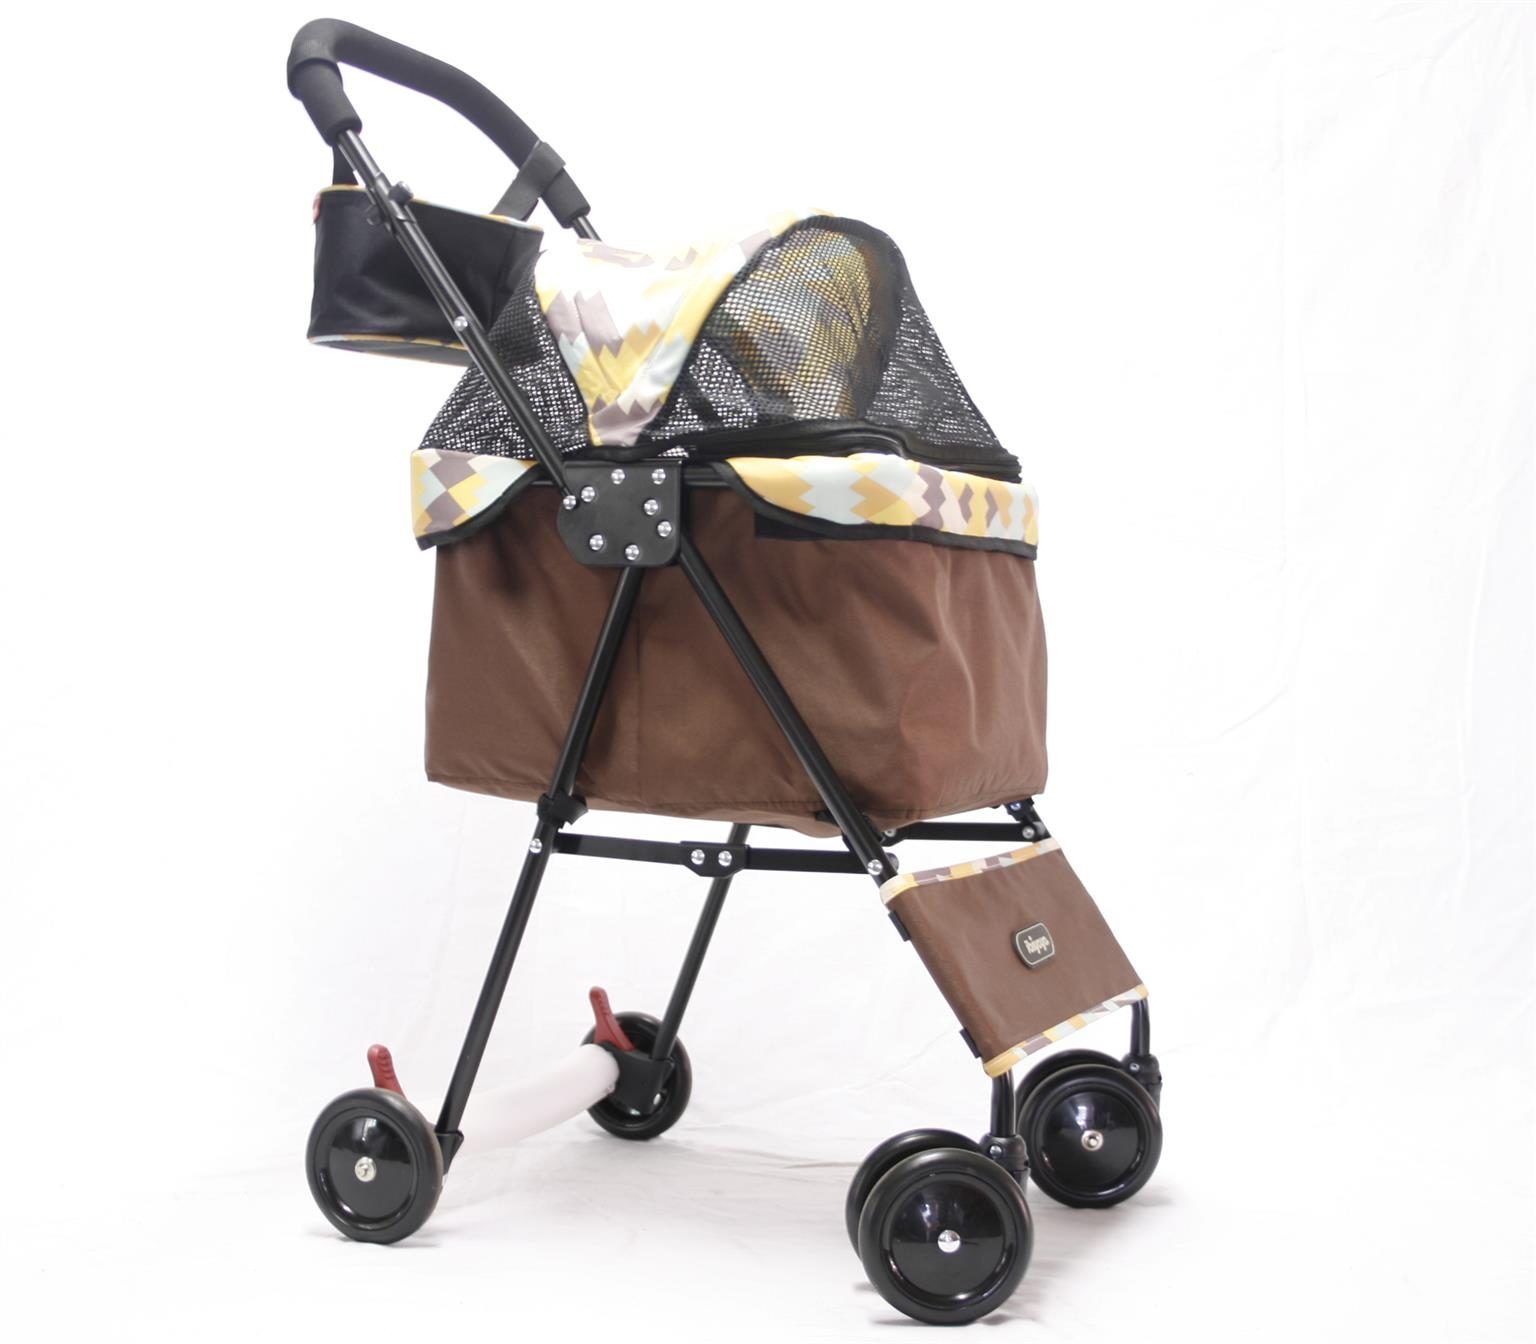 Dog Stroller Mini Buggy ZigZag – 4 wheeler